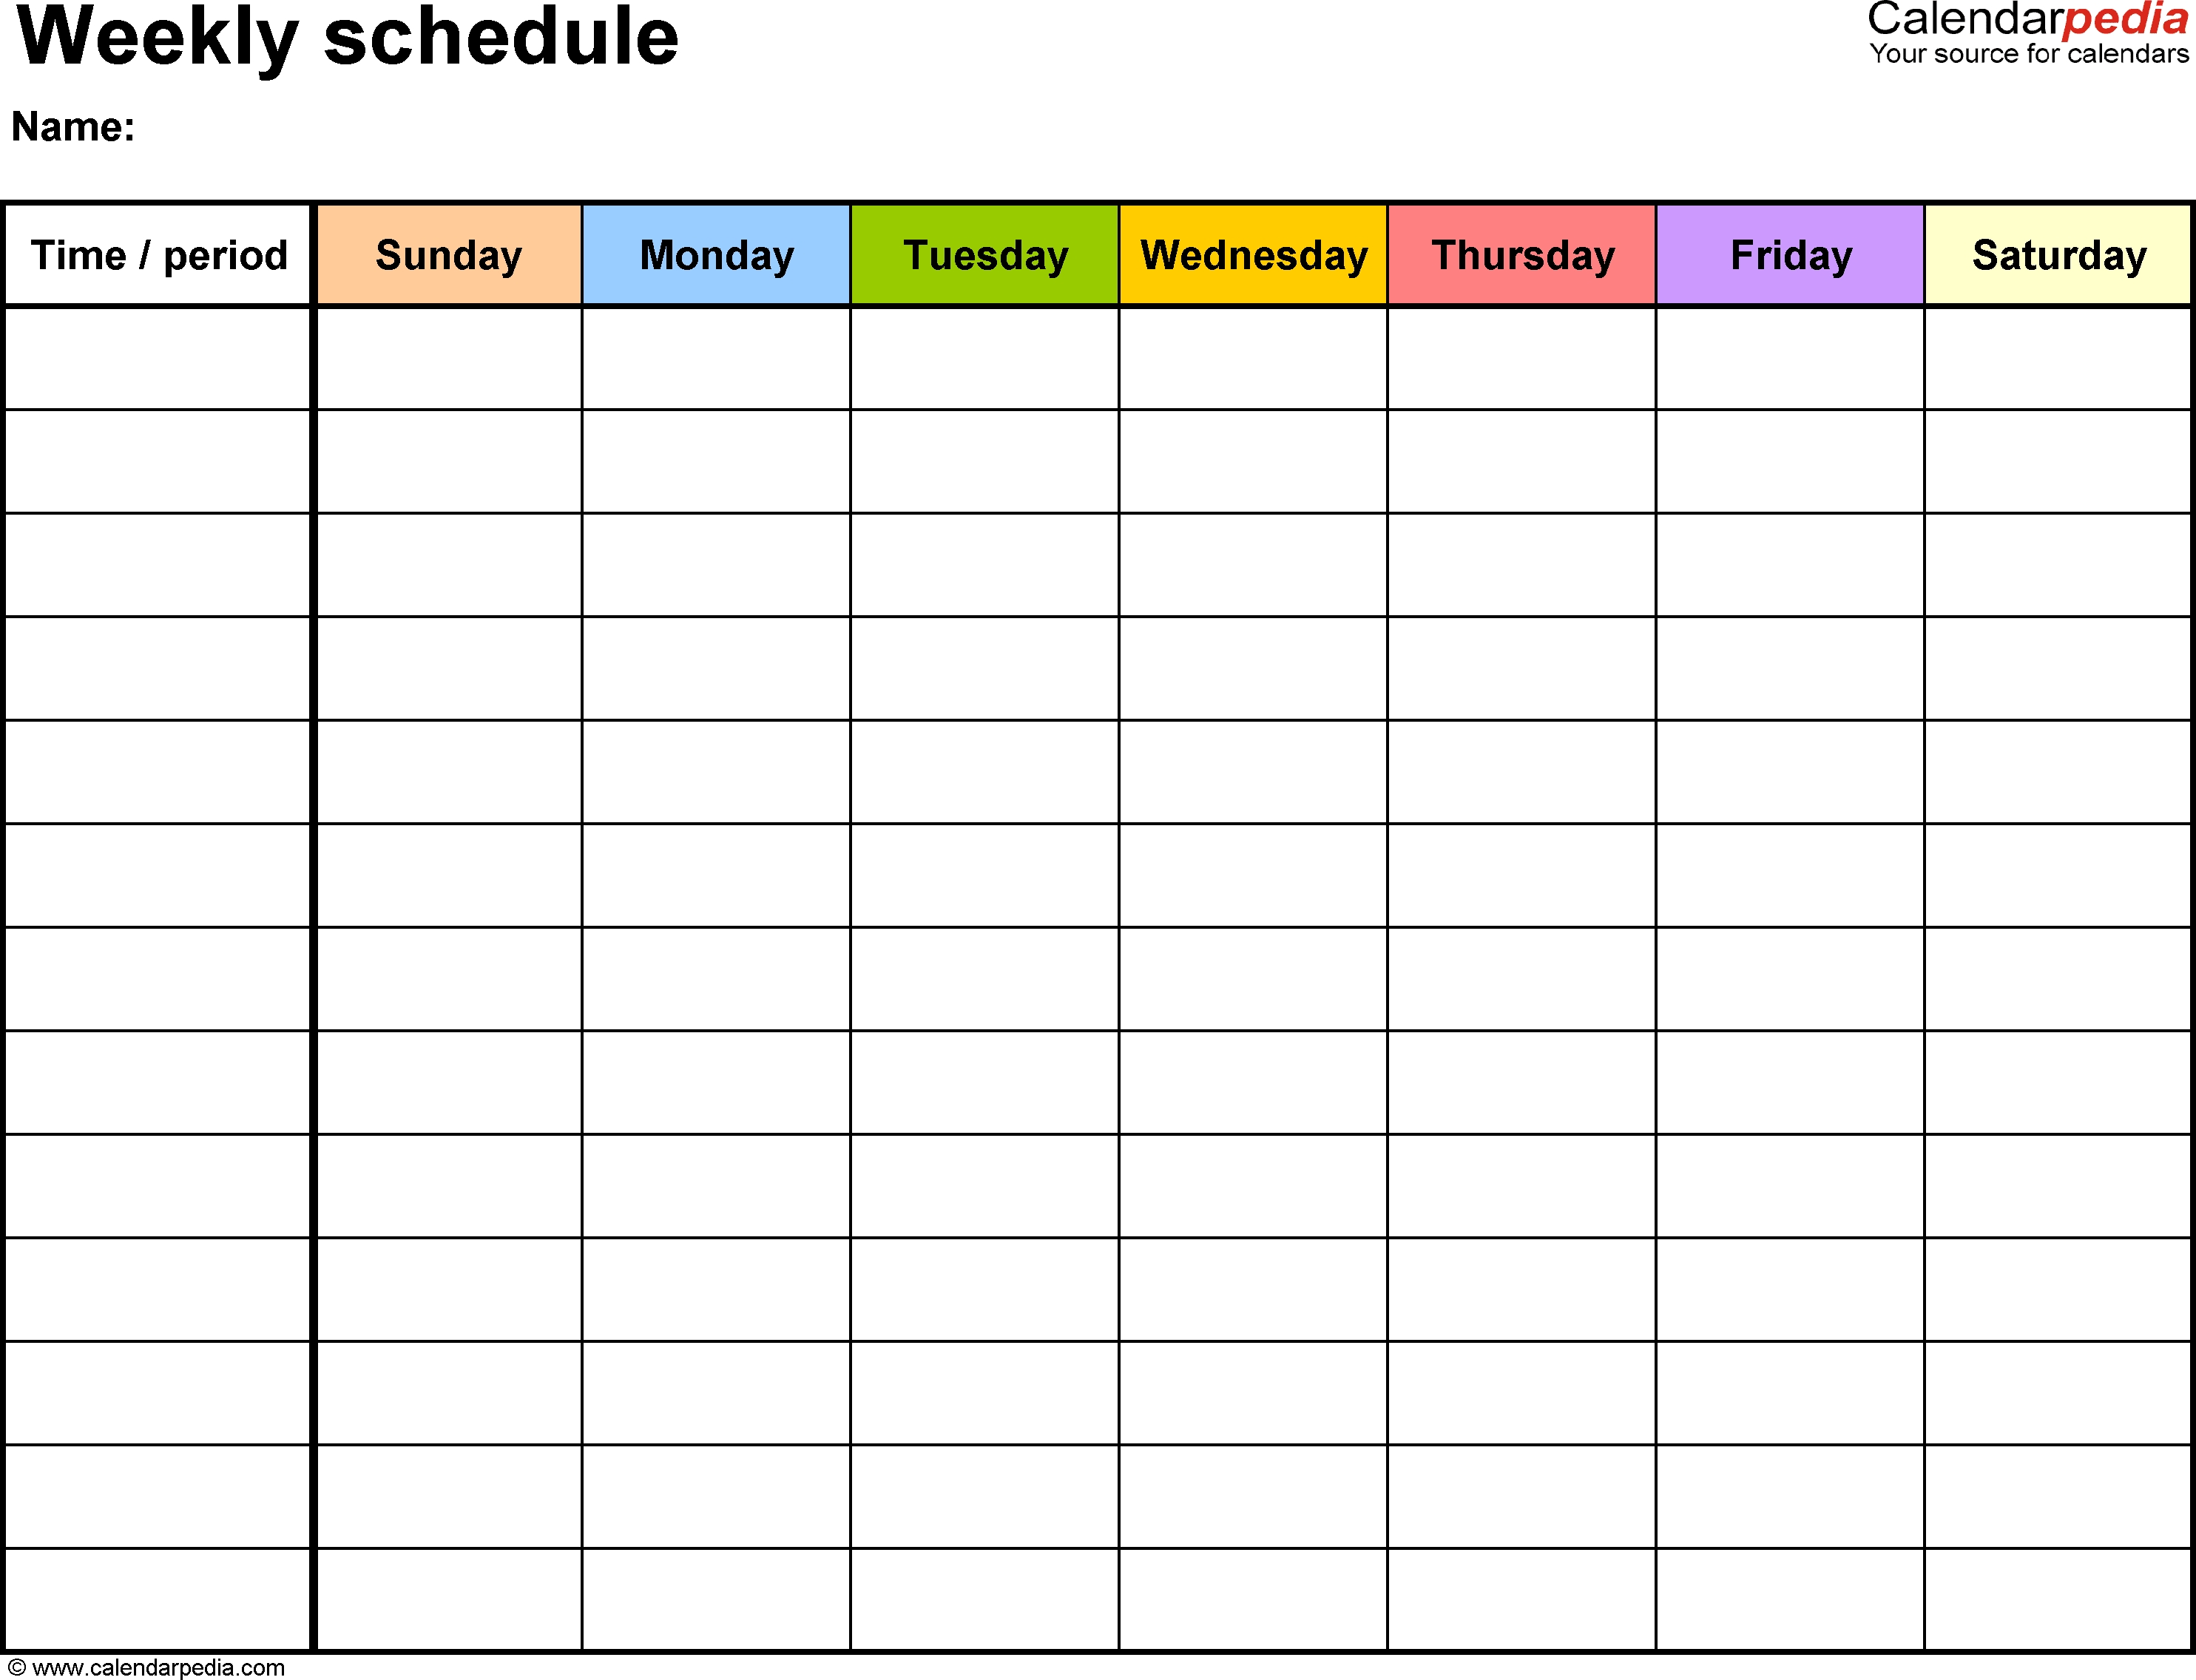 Free Weekly Schedule Templates For Excel - 18 Templates with Free Printable Template For Day Of The Week Schedule